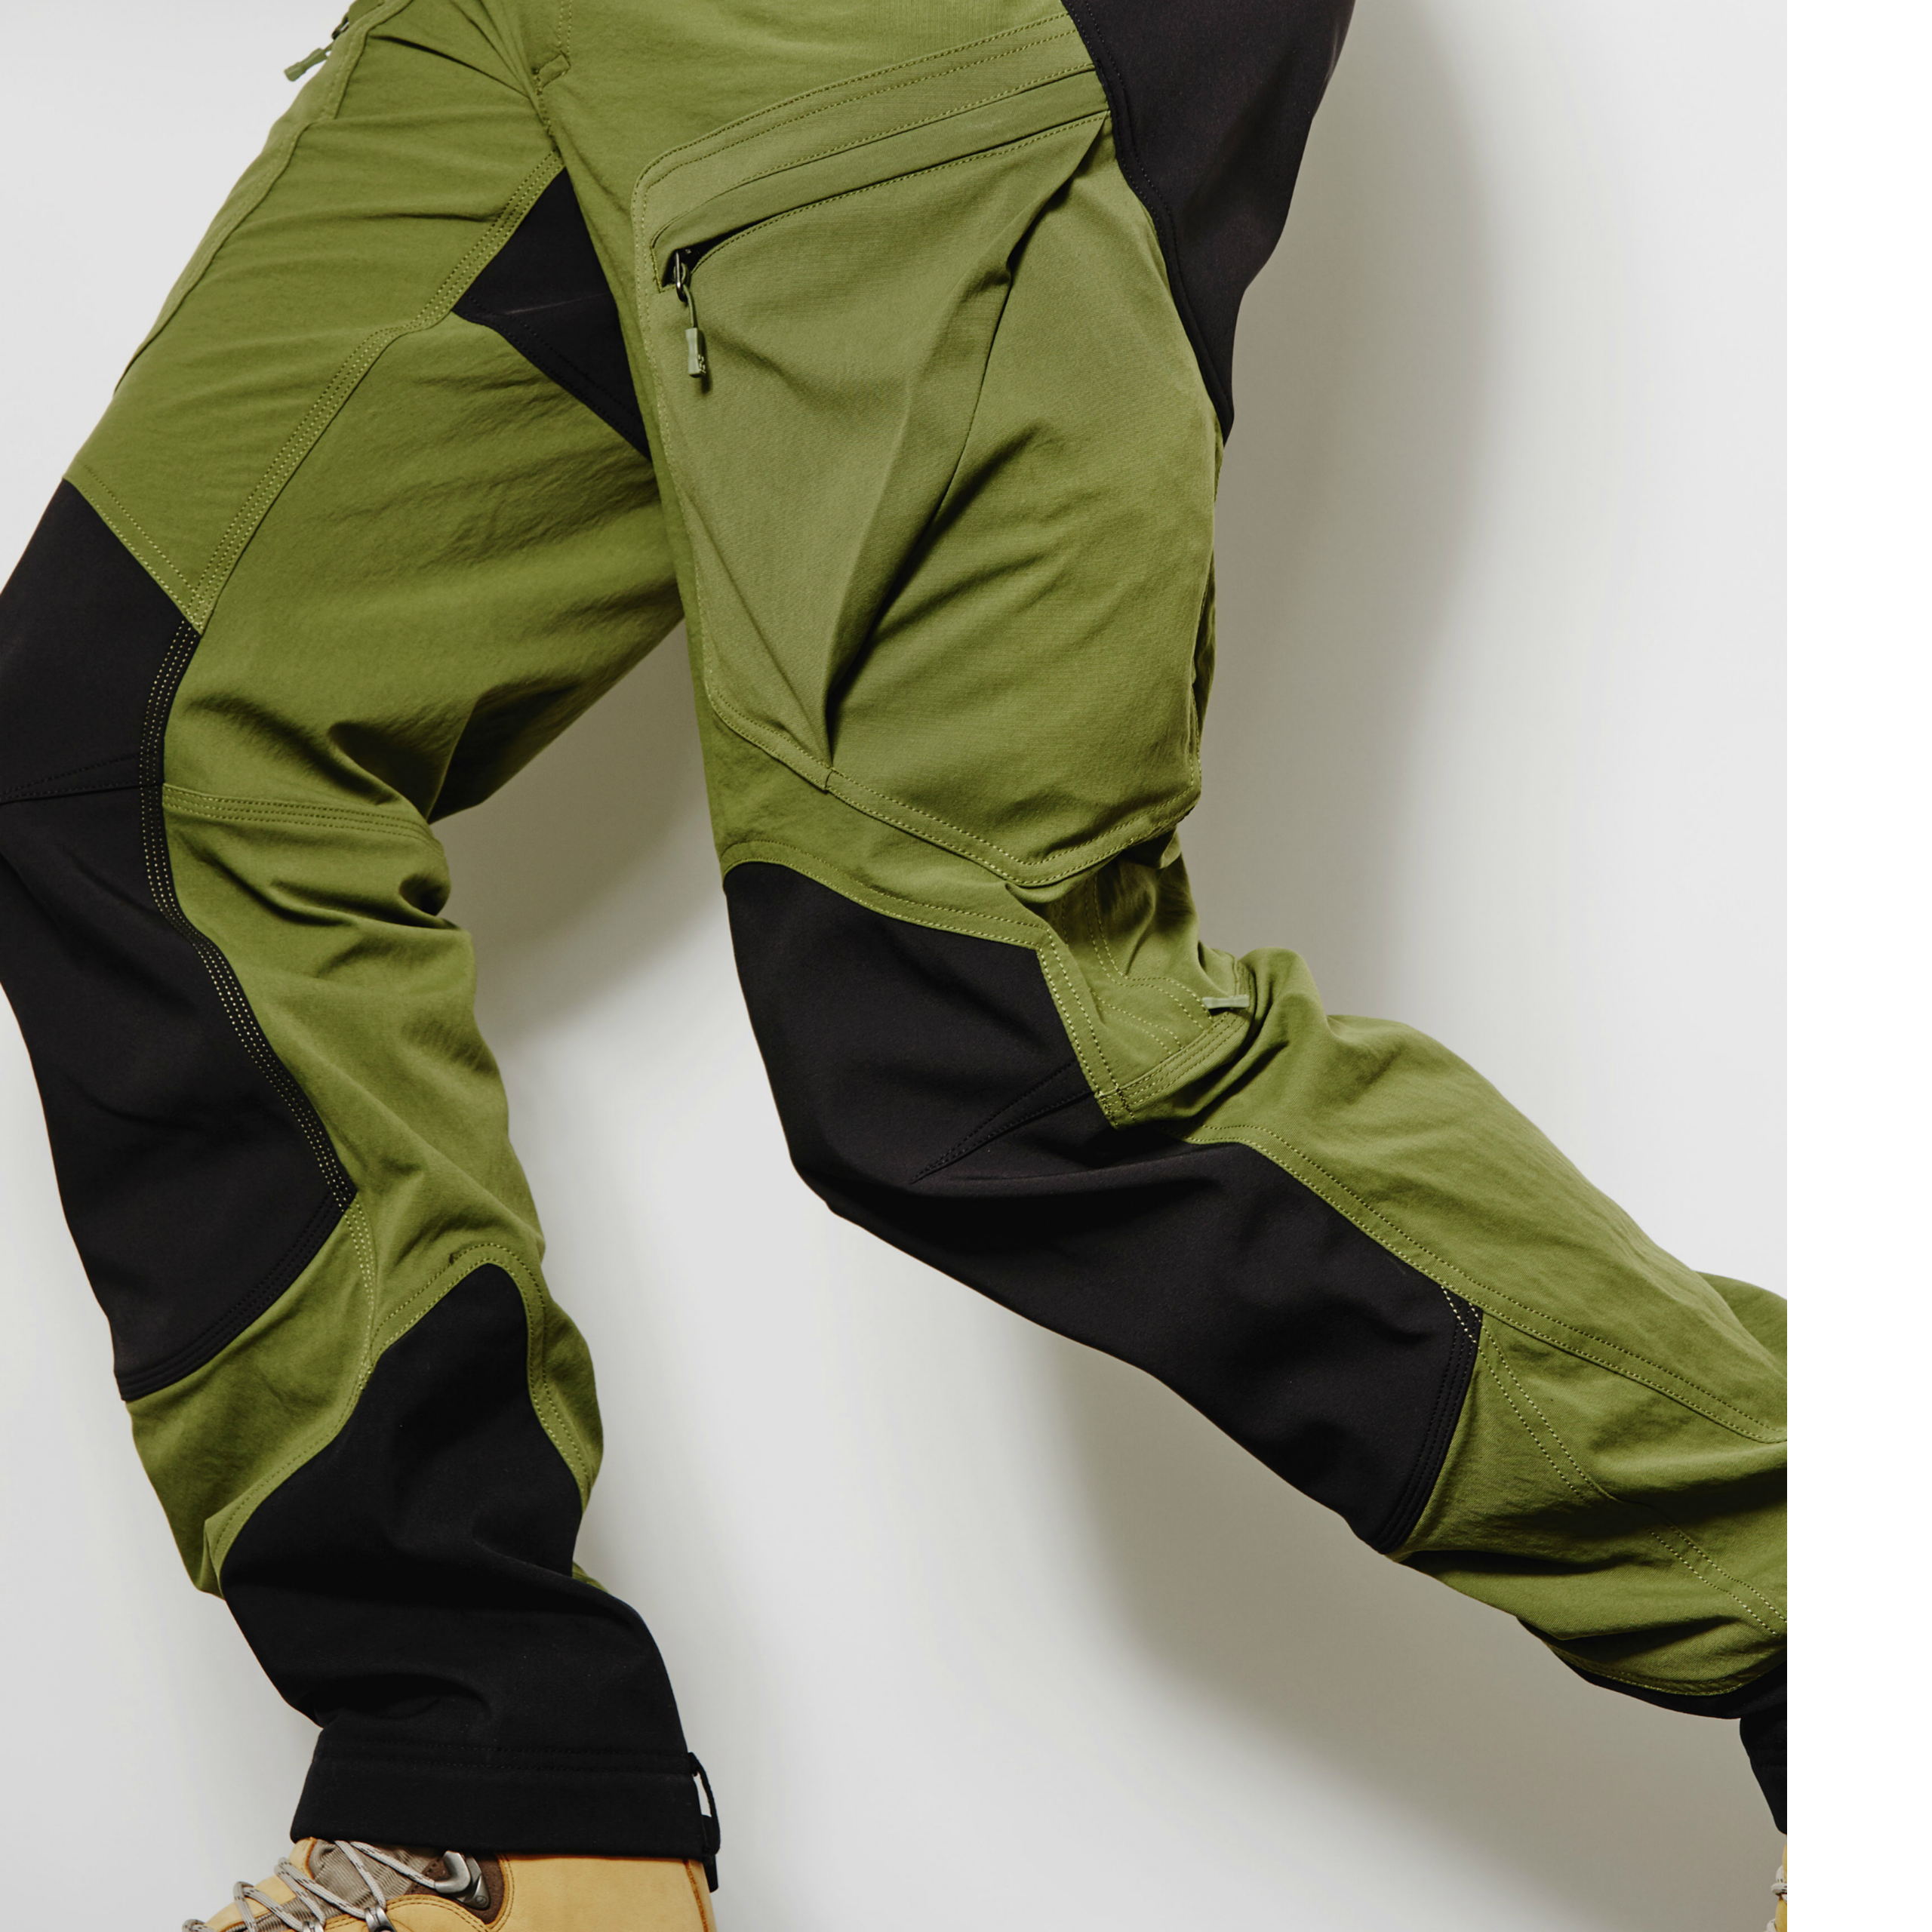 Rugged Ii Mountain Pant Men Mens Work Pants Mens Fashion Rugged Mens Outdoor Pants